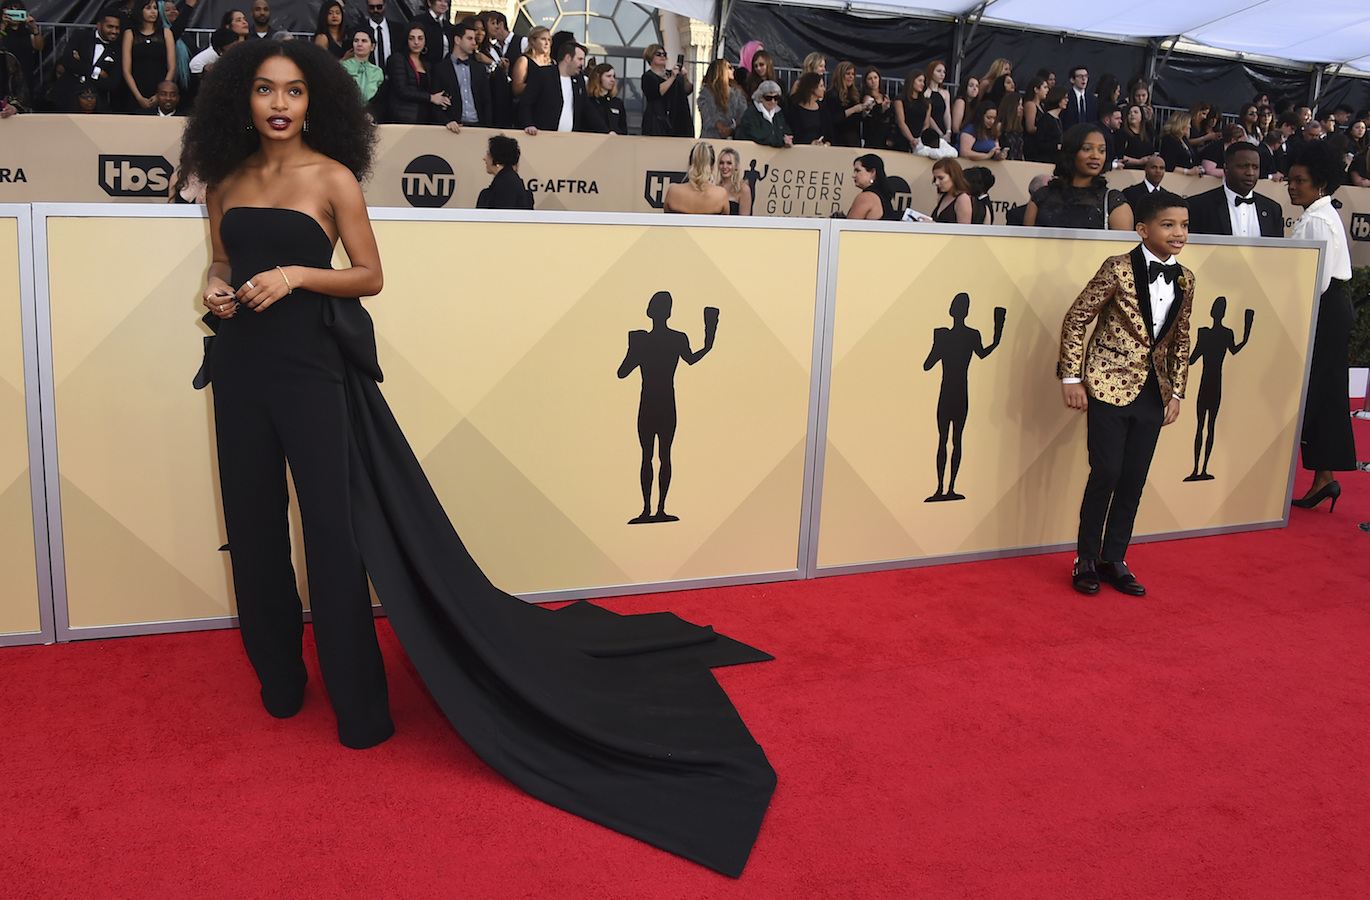 <div class='meta'><div class='origin-logo' data-origin='AP'></div><span class='caption-text' data-credit='Jordan Strauss/Invision/AP'>Yara Shahidi arrives at the 24th annual Screen Actors Guild Awards at the Shrine Auditorium & Expo Hall on Sunday, Jan. 21, 2018, in Los Angeles.</span></div>